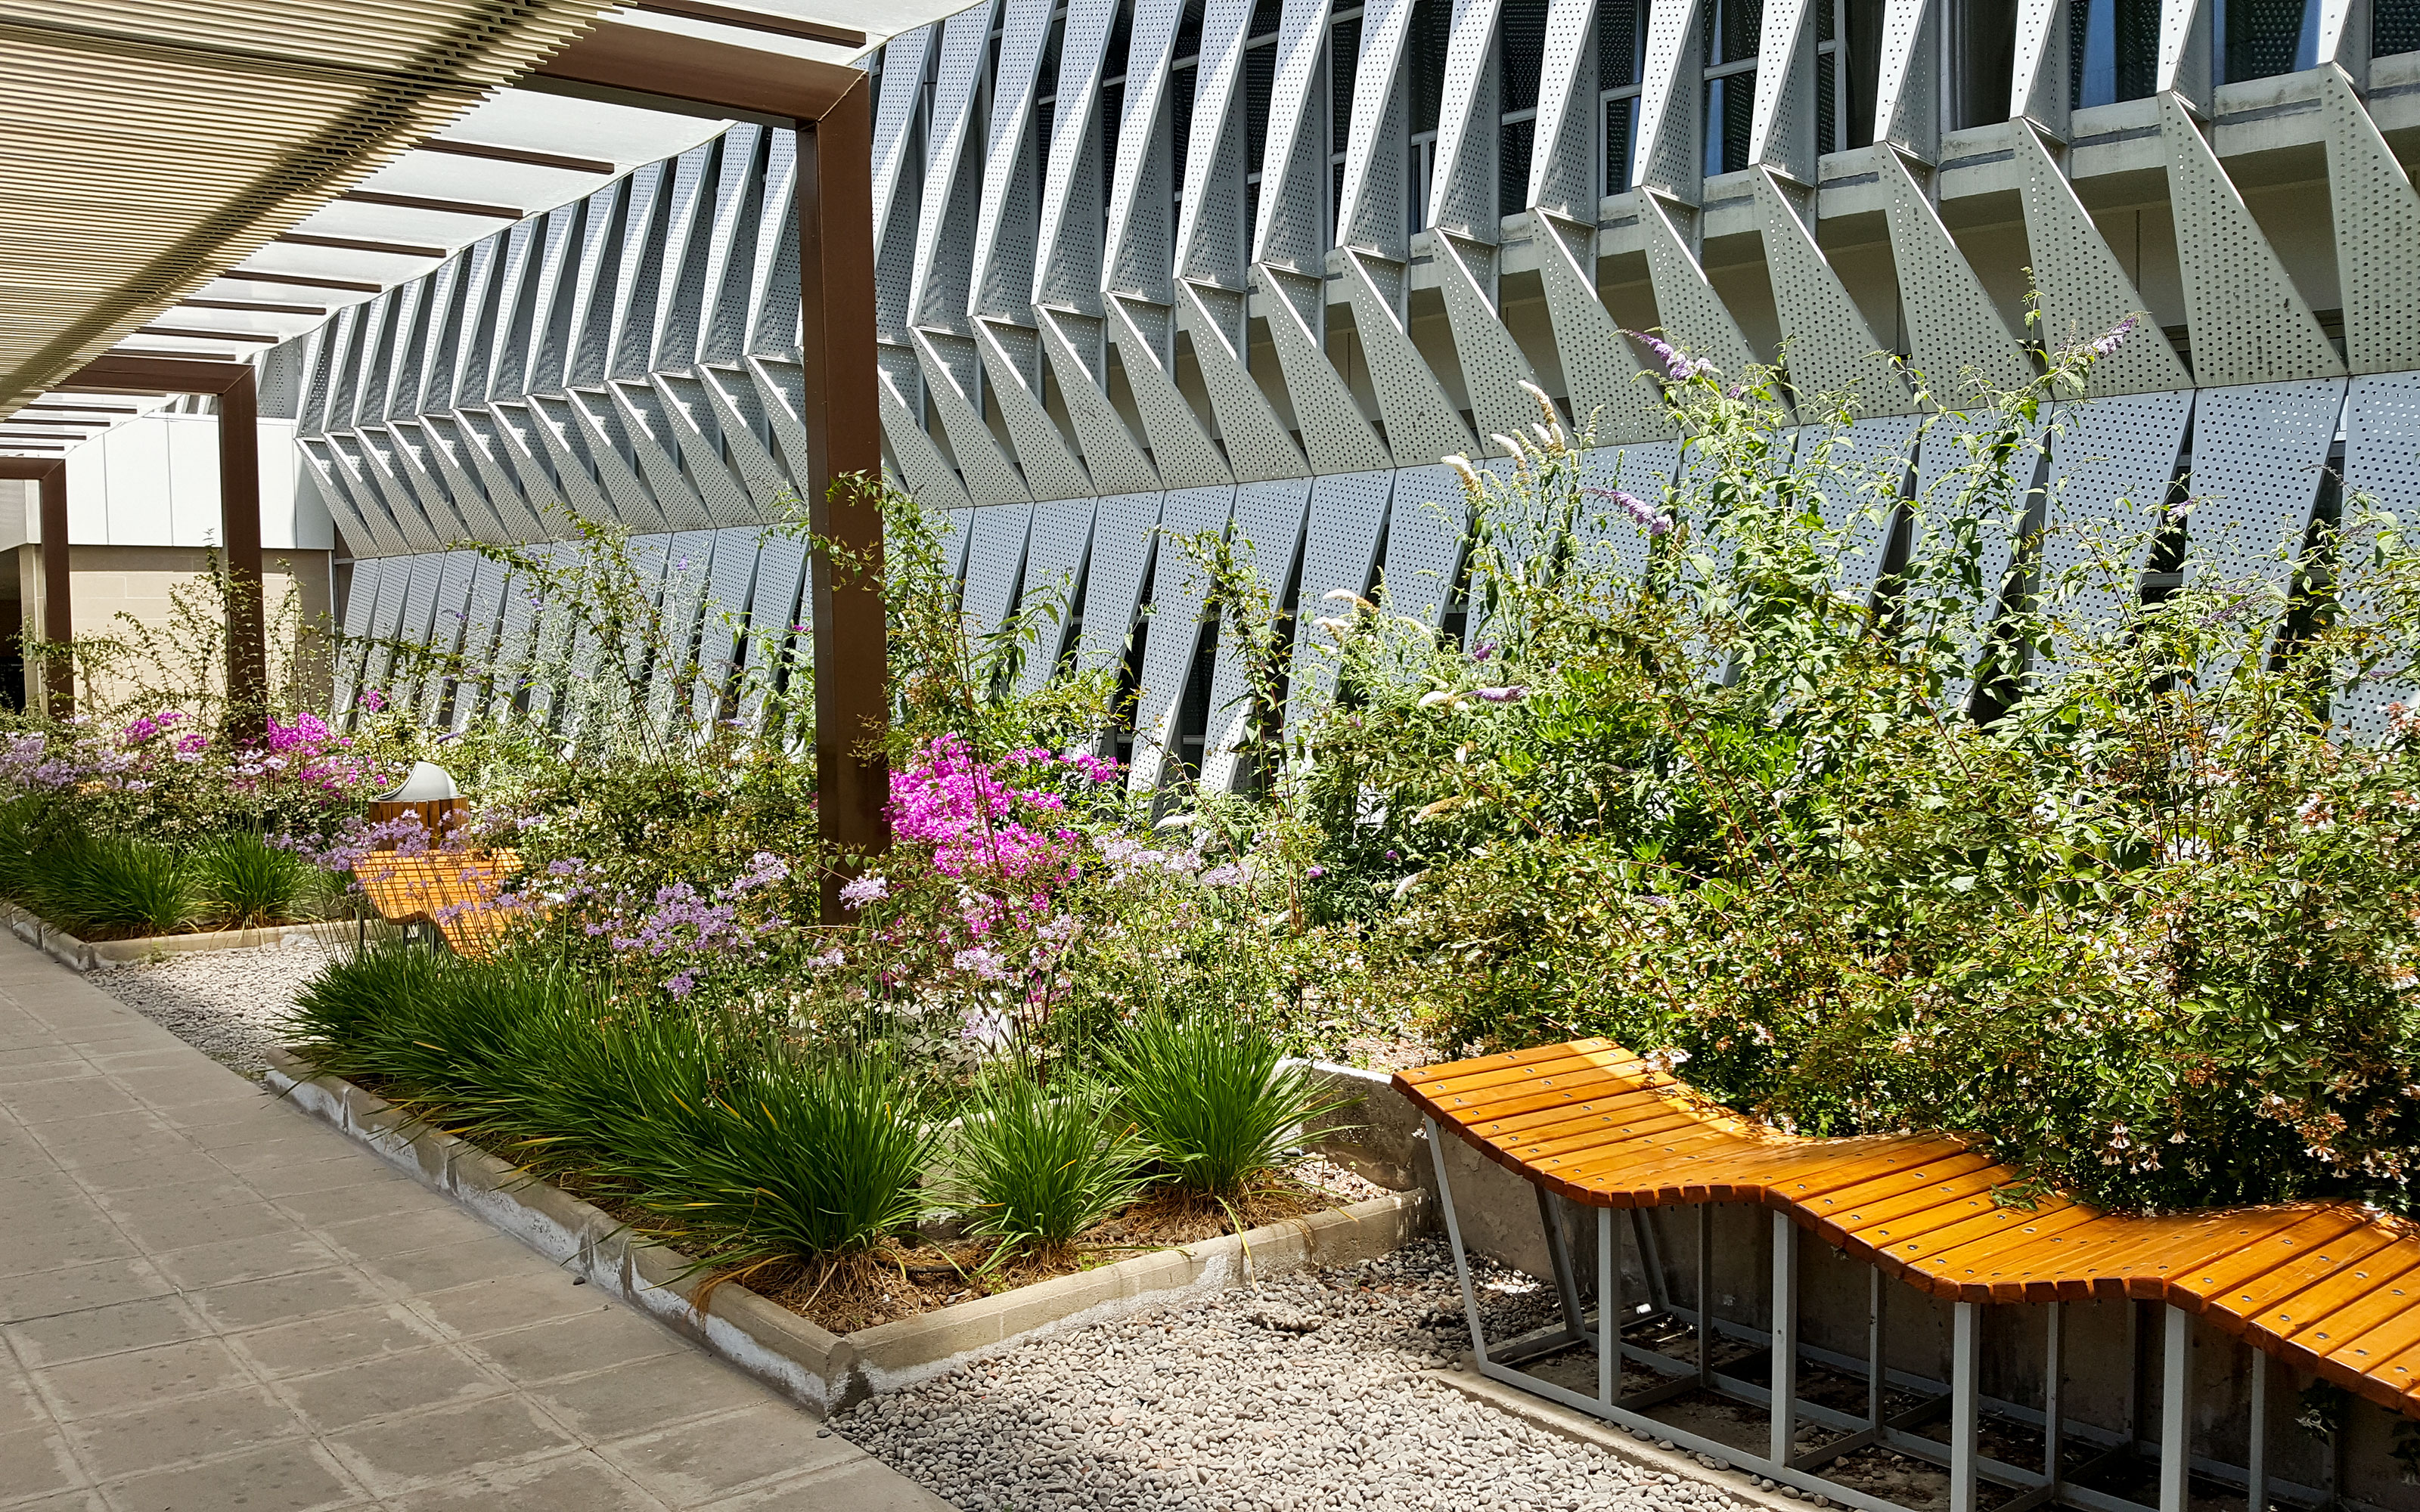 Plant beds with flowers and wave-like benches